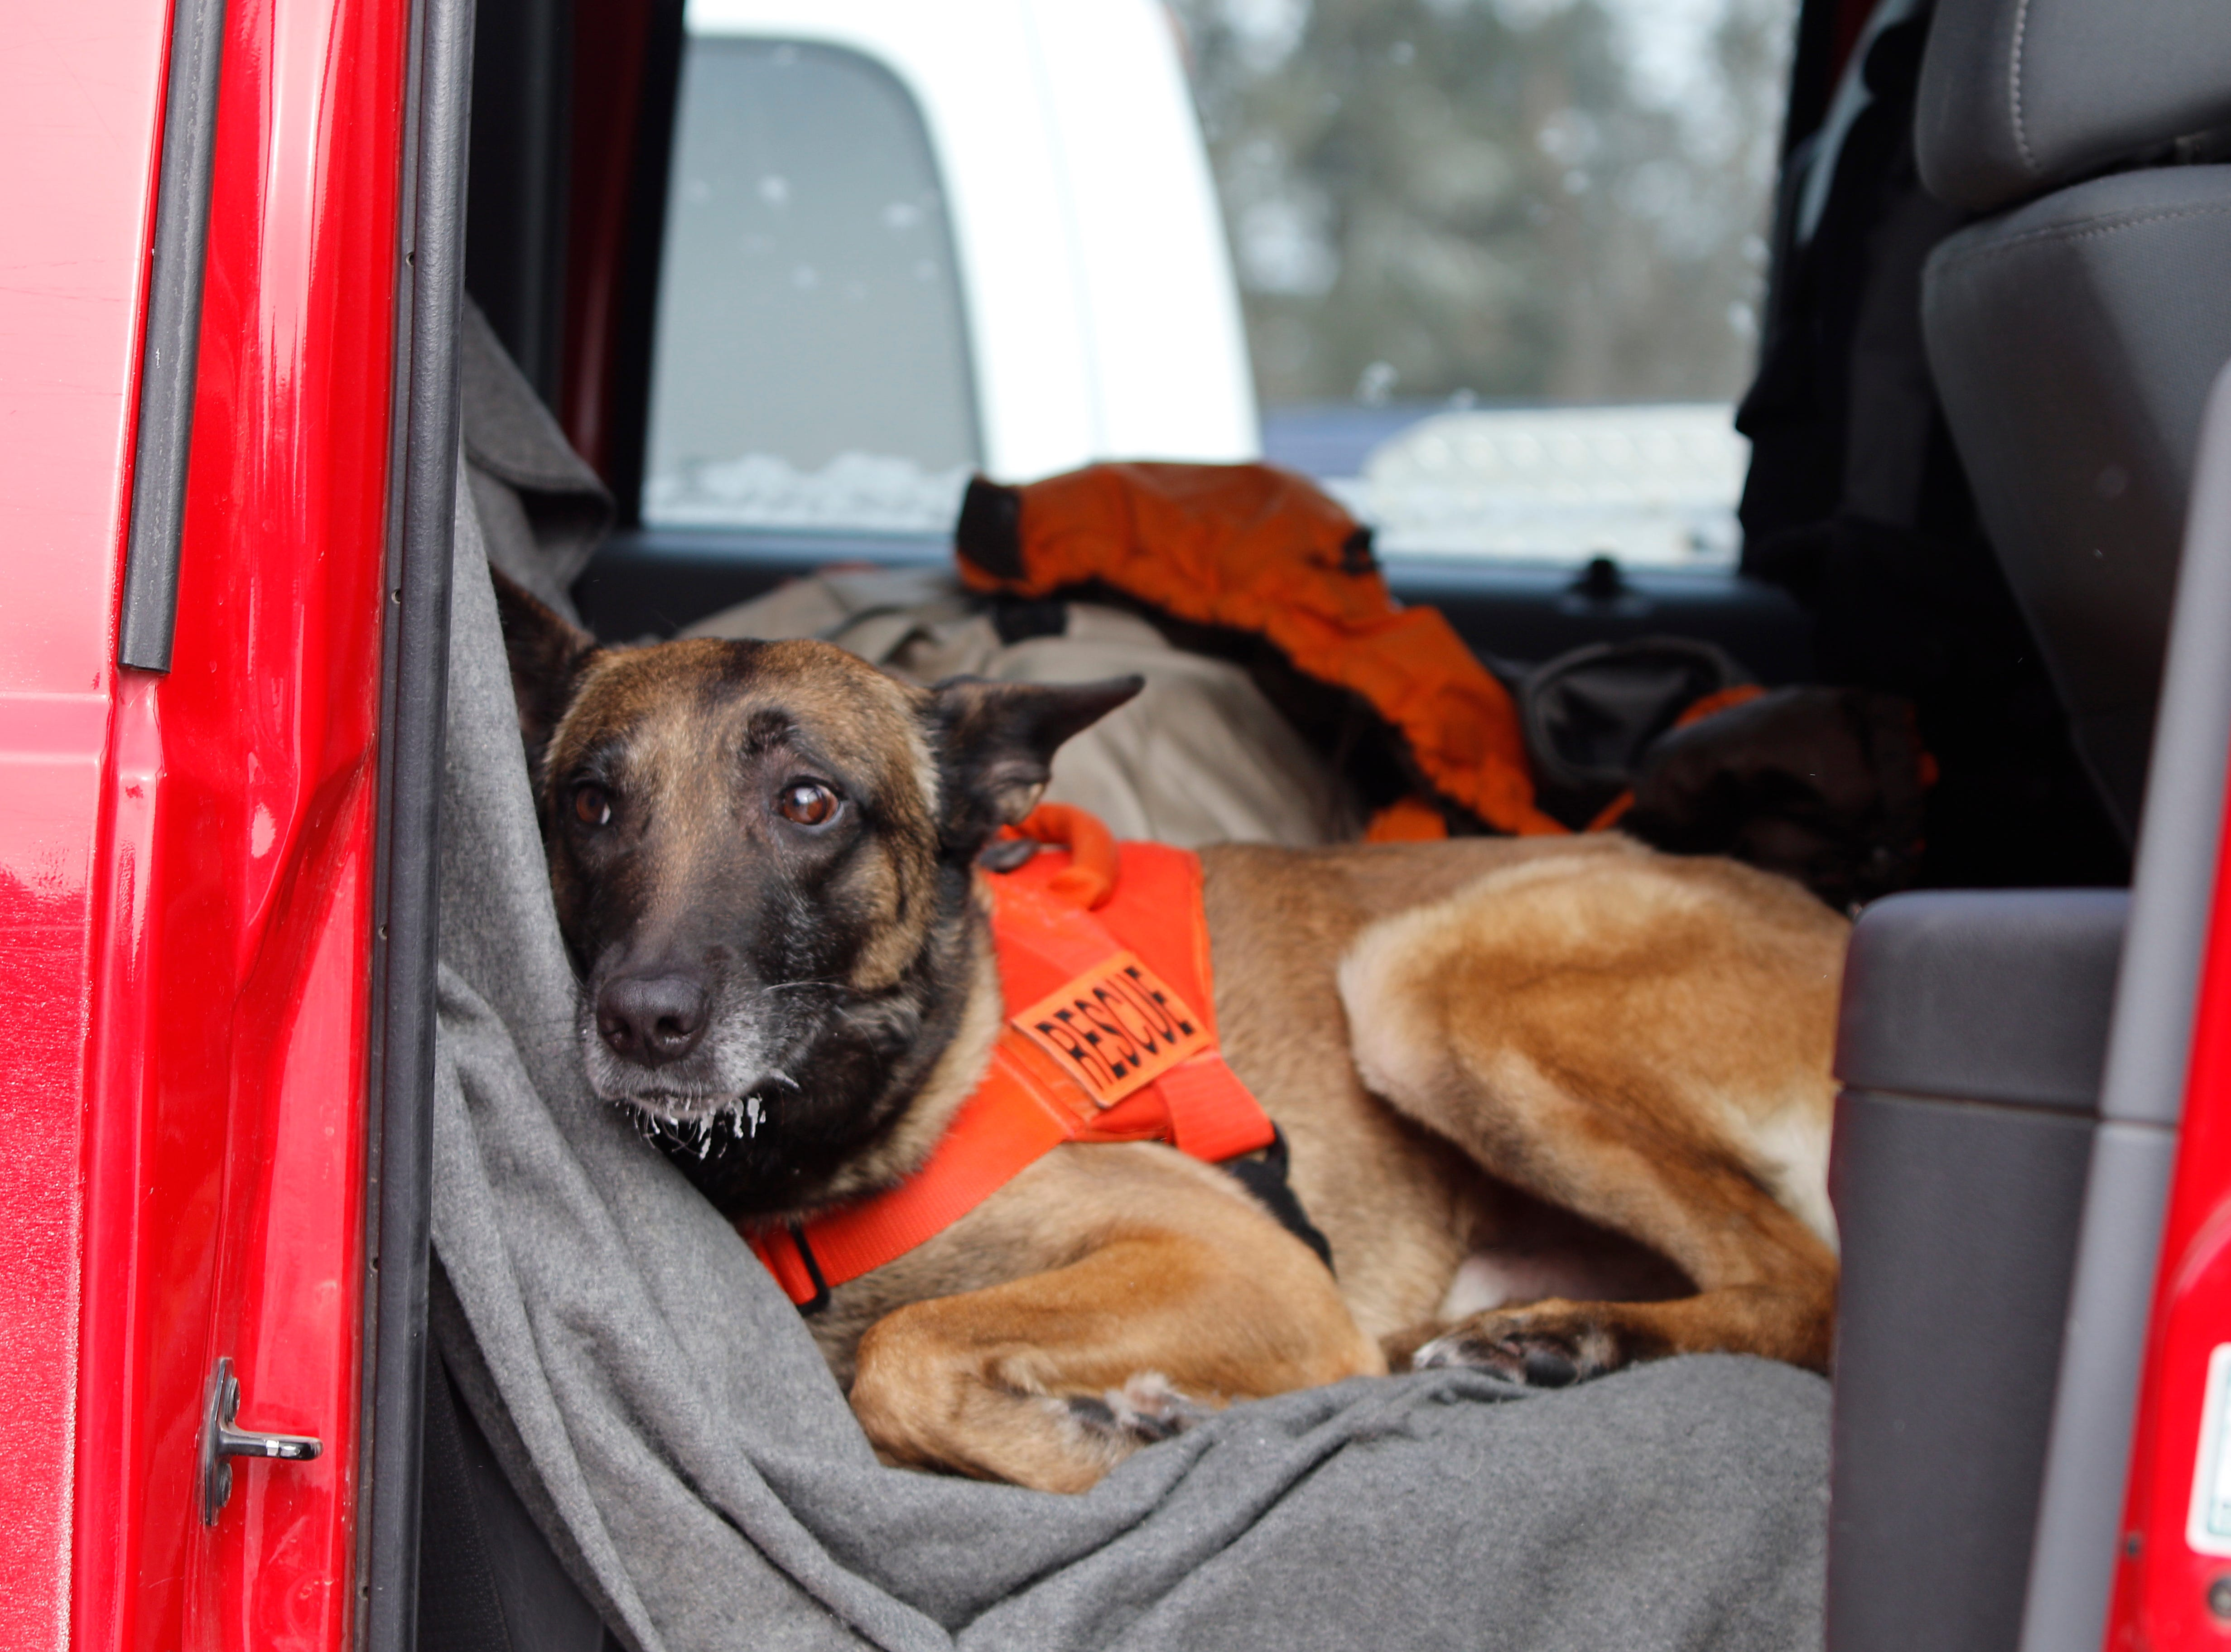 Cisco, a search-and-rescue dog with the Rapid City Fire Department, takes a break during the search efforts for a missing 9-year-old girl in freezing weather near Rockerville, S.D., Monday, Feb. 4, 2019. Authorities say that Serenity Dennard ran away from staff at a residential youth home.